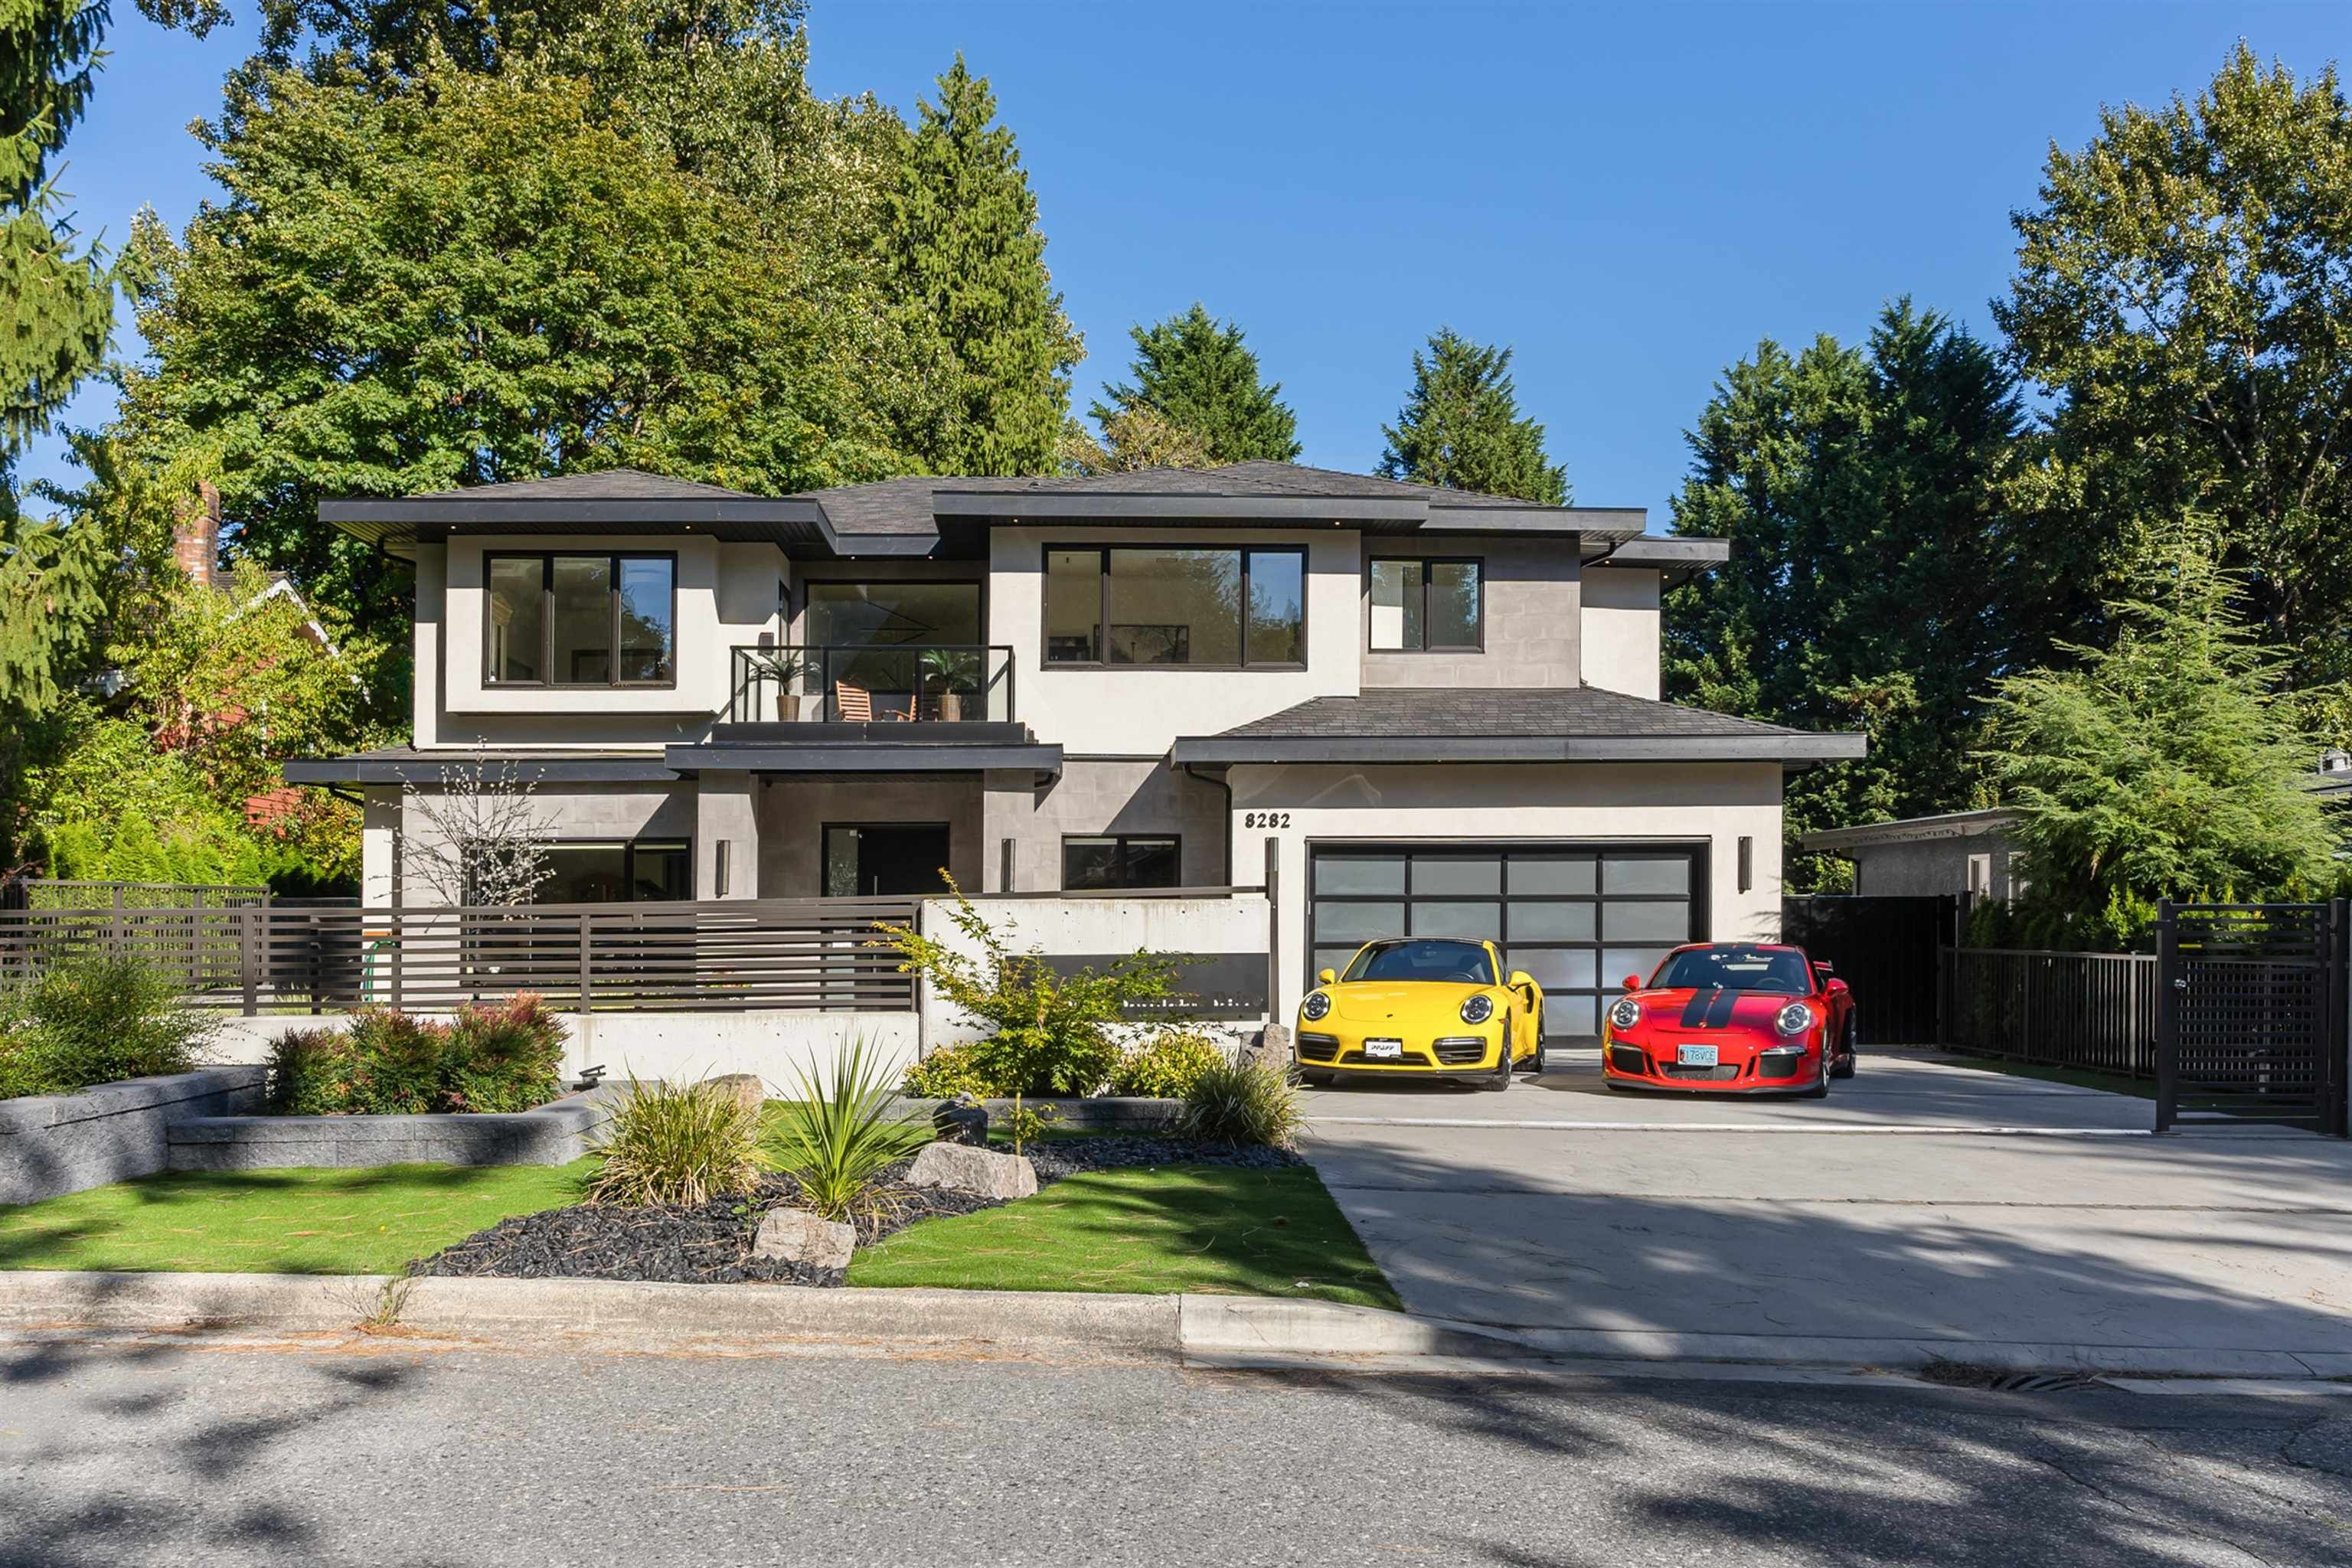 Main Photo: 8282 BURNLAKE Drive in Burnaby: Government Road House for sale (Burnaby North)  : MLS®# R2622747